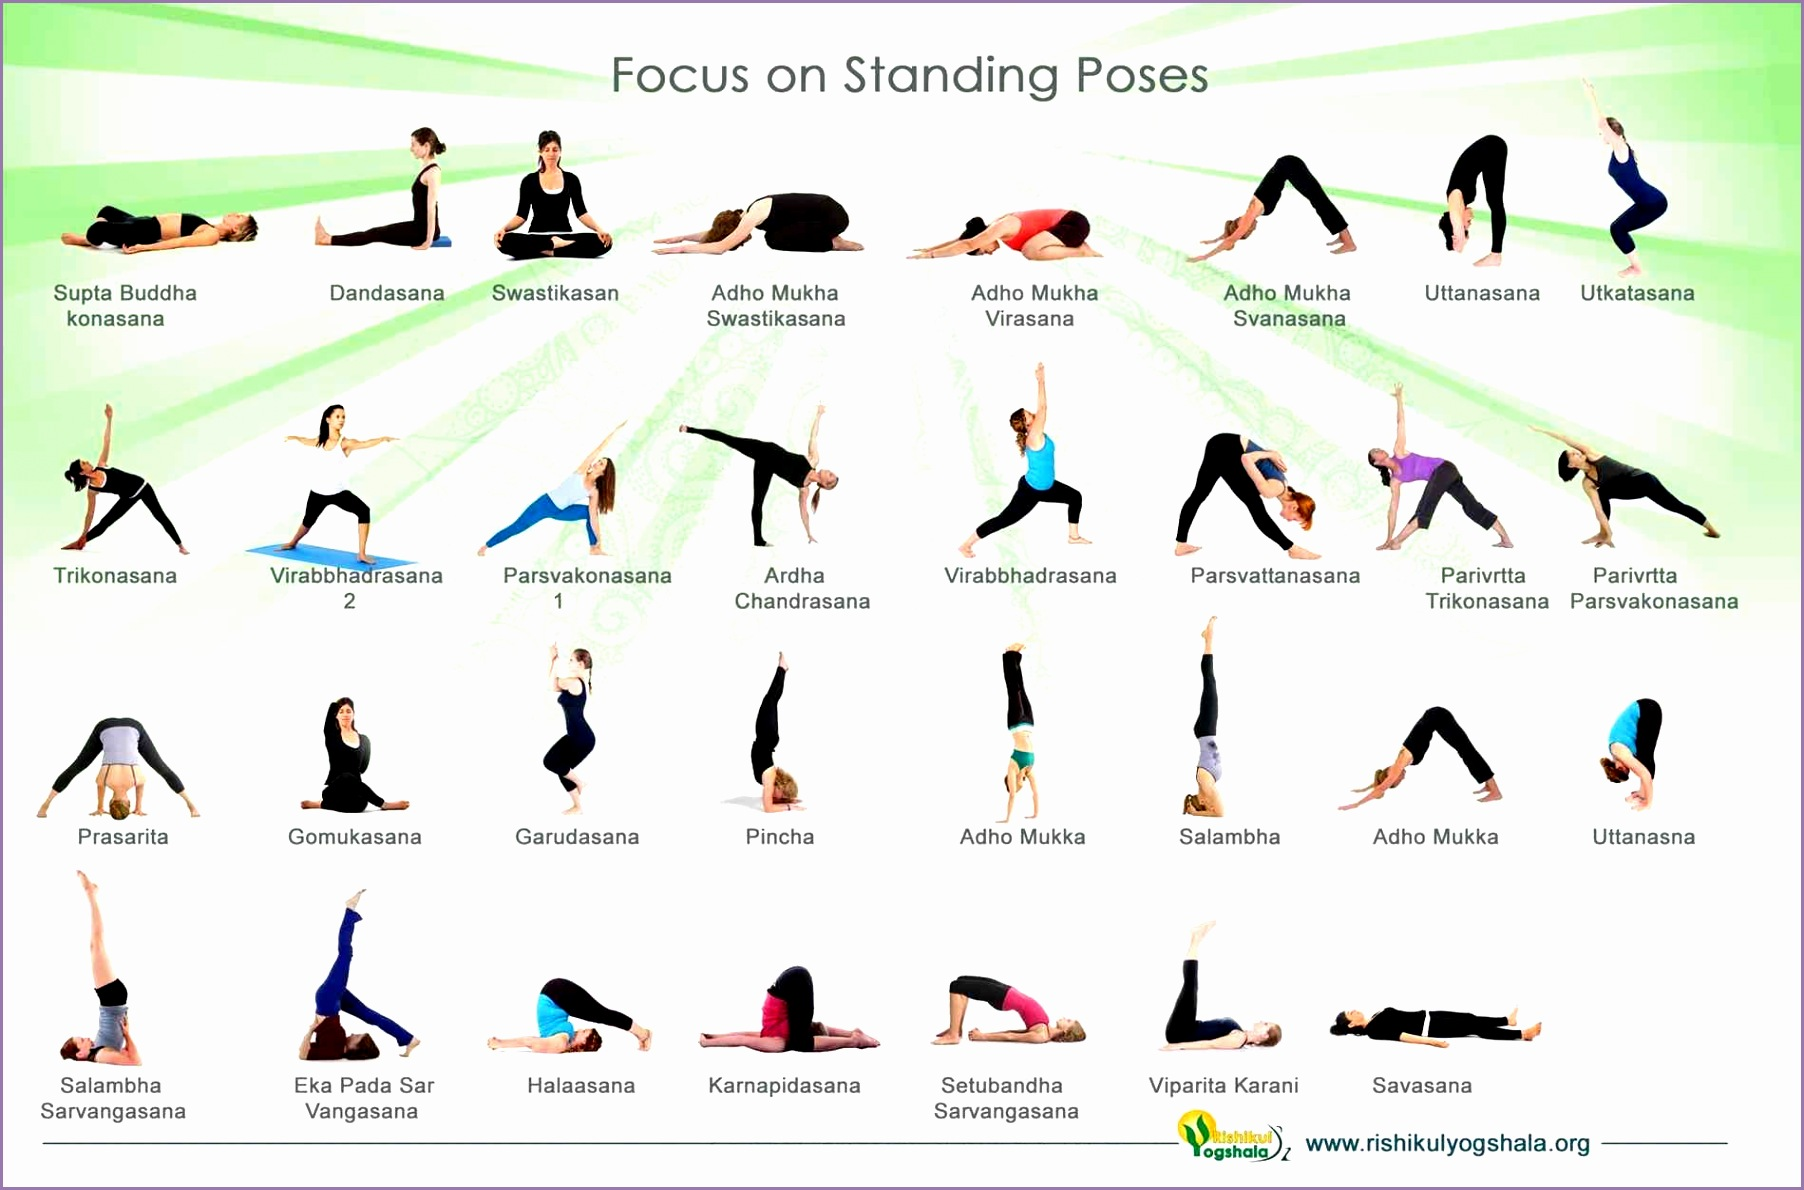 with posses and pose posses standing yoga poses names with and pose for beginners work out picture media for standing yoga poses